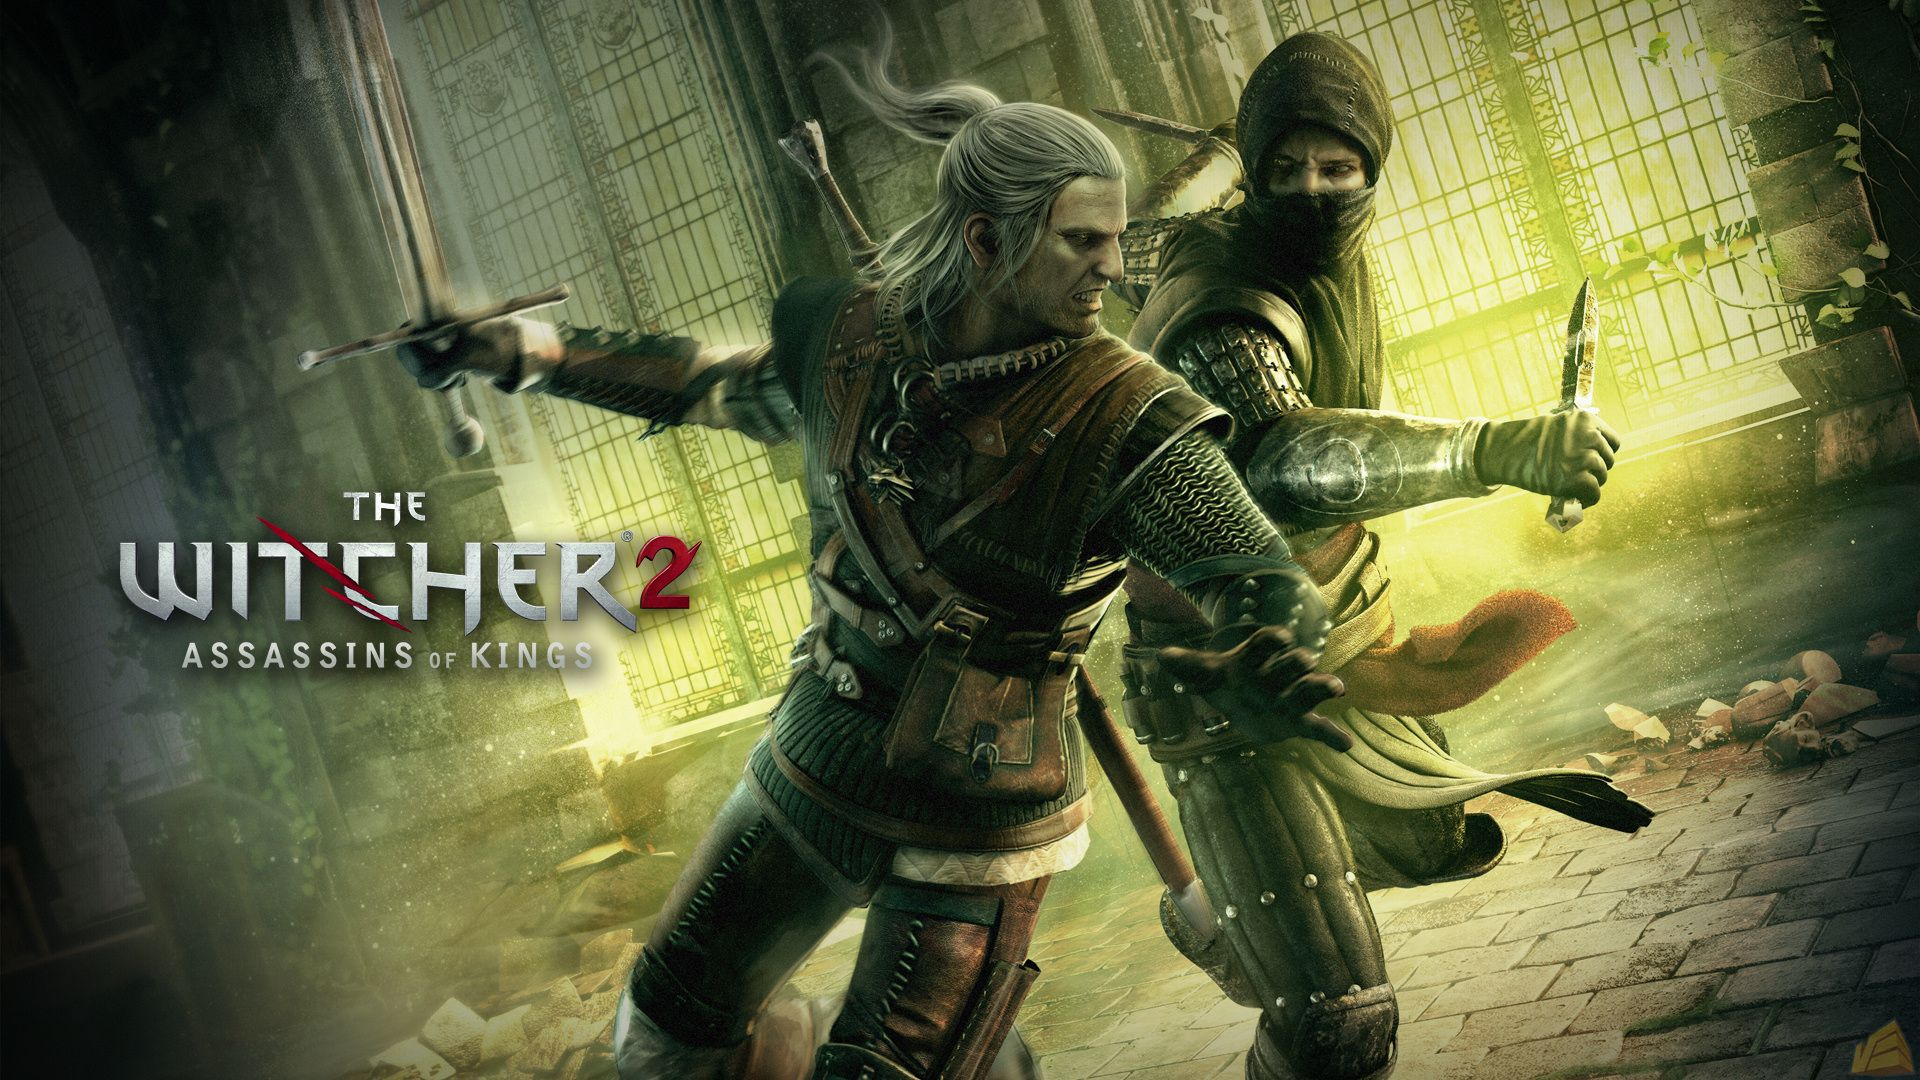 The Witcher 2 Deal G2A